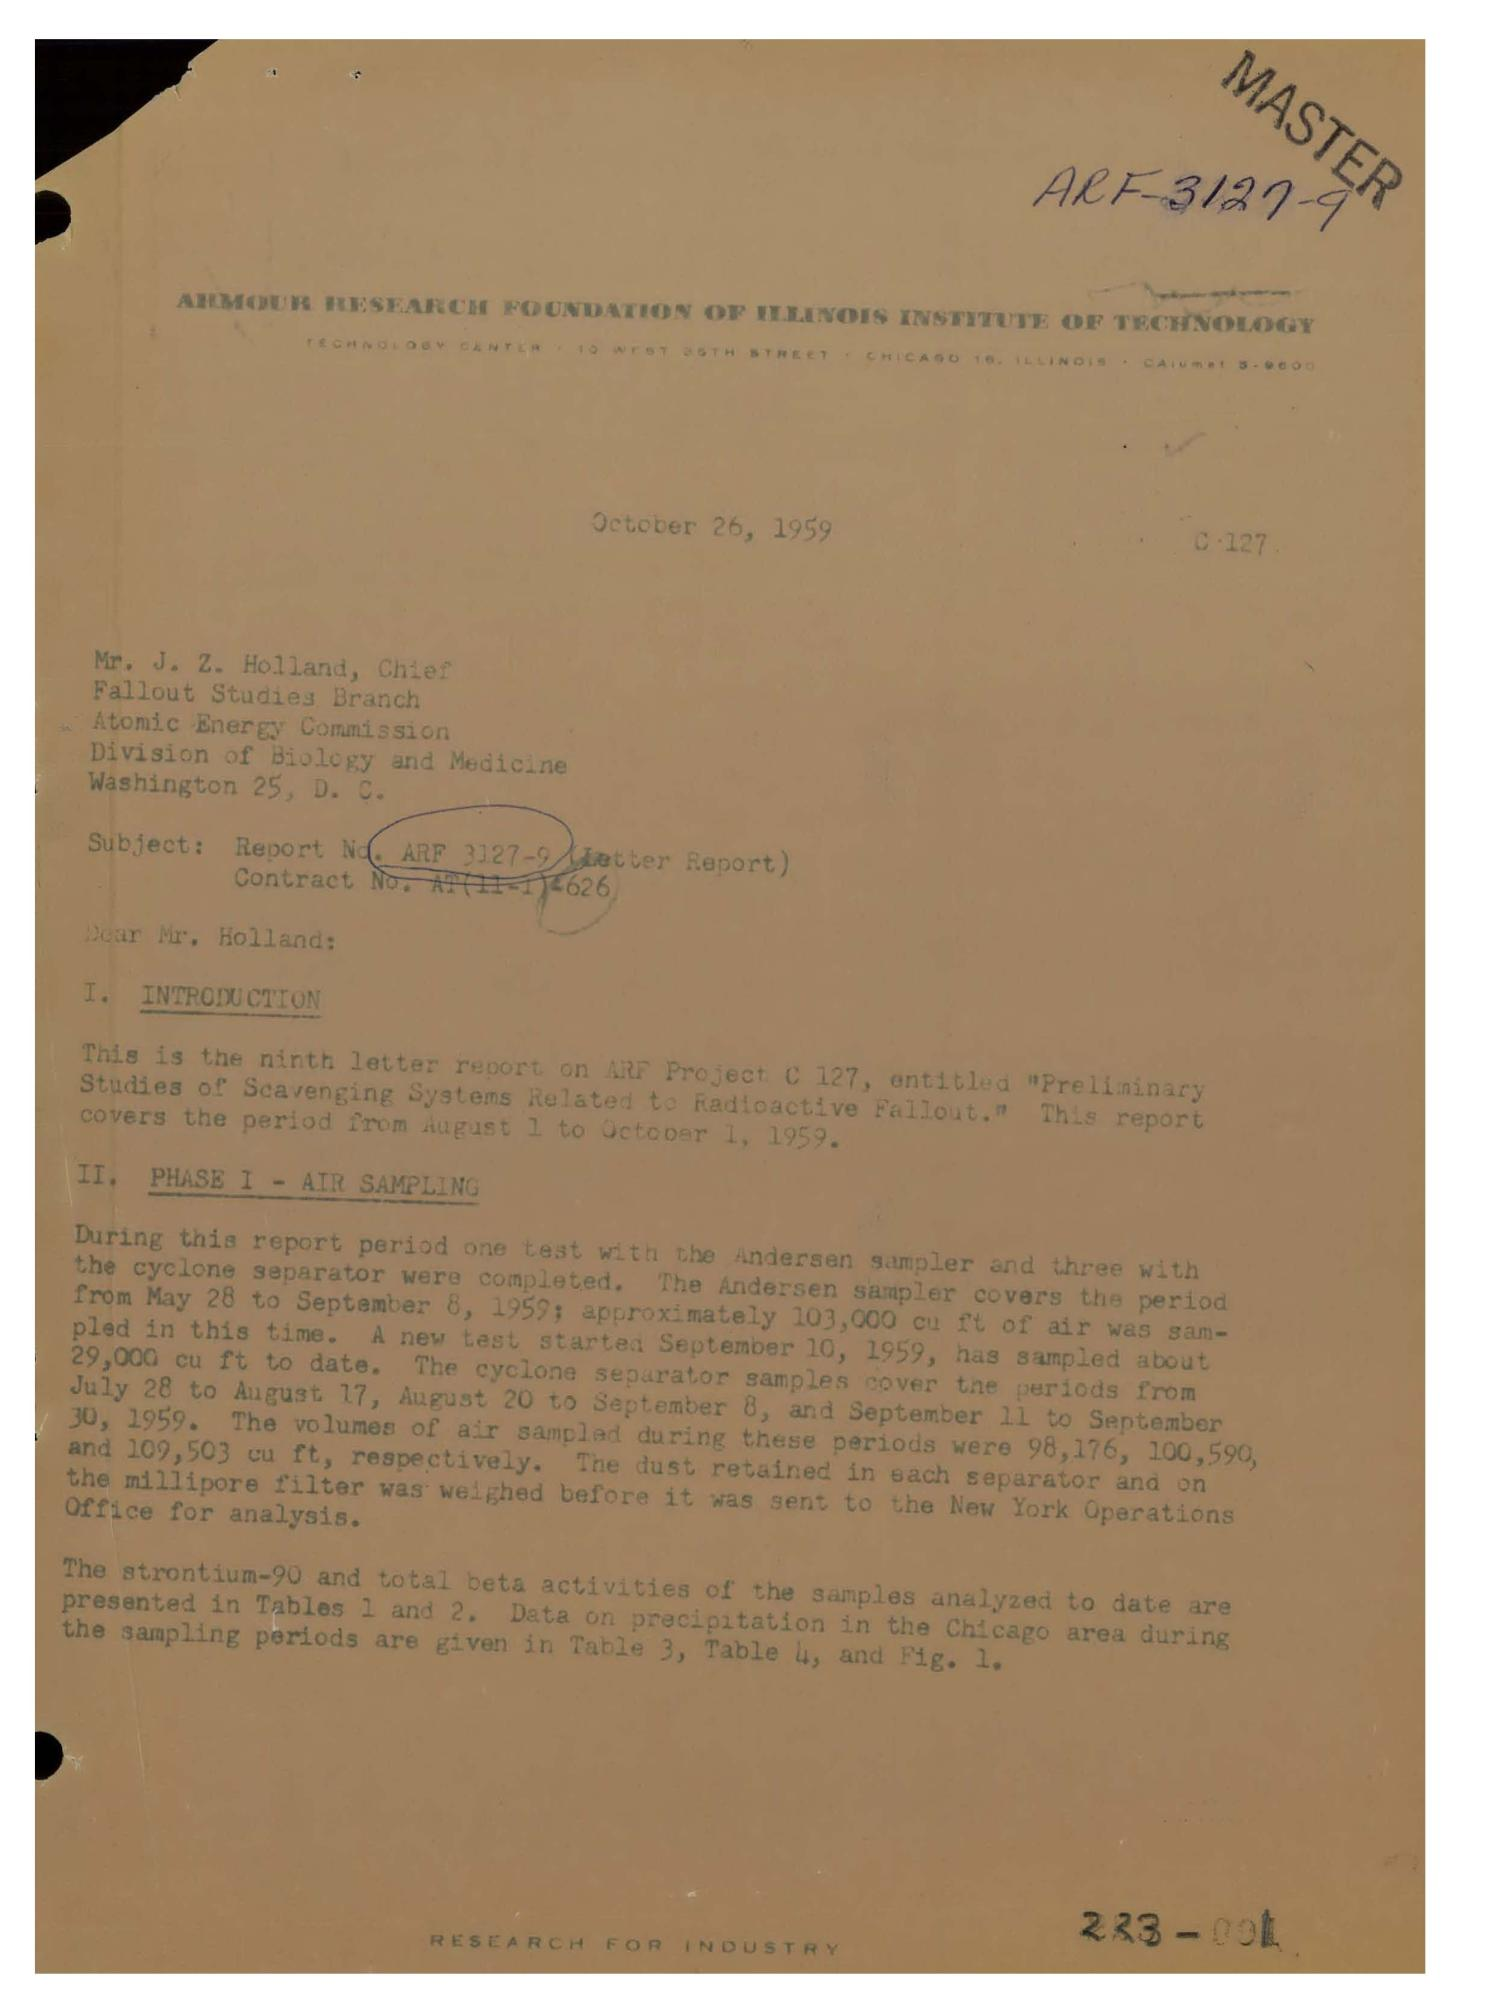 Preliminary Studies of Scavenging Systems Related to Radioactive Fallout. Letter Report No. 9 for August 1 to October 1, 1959                                                                                                      [Sequence #]: 1 of 11